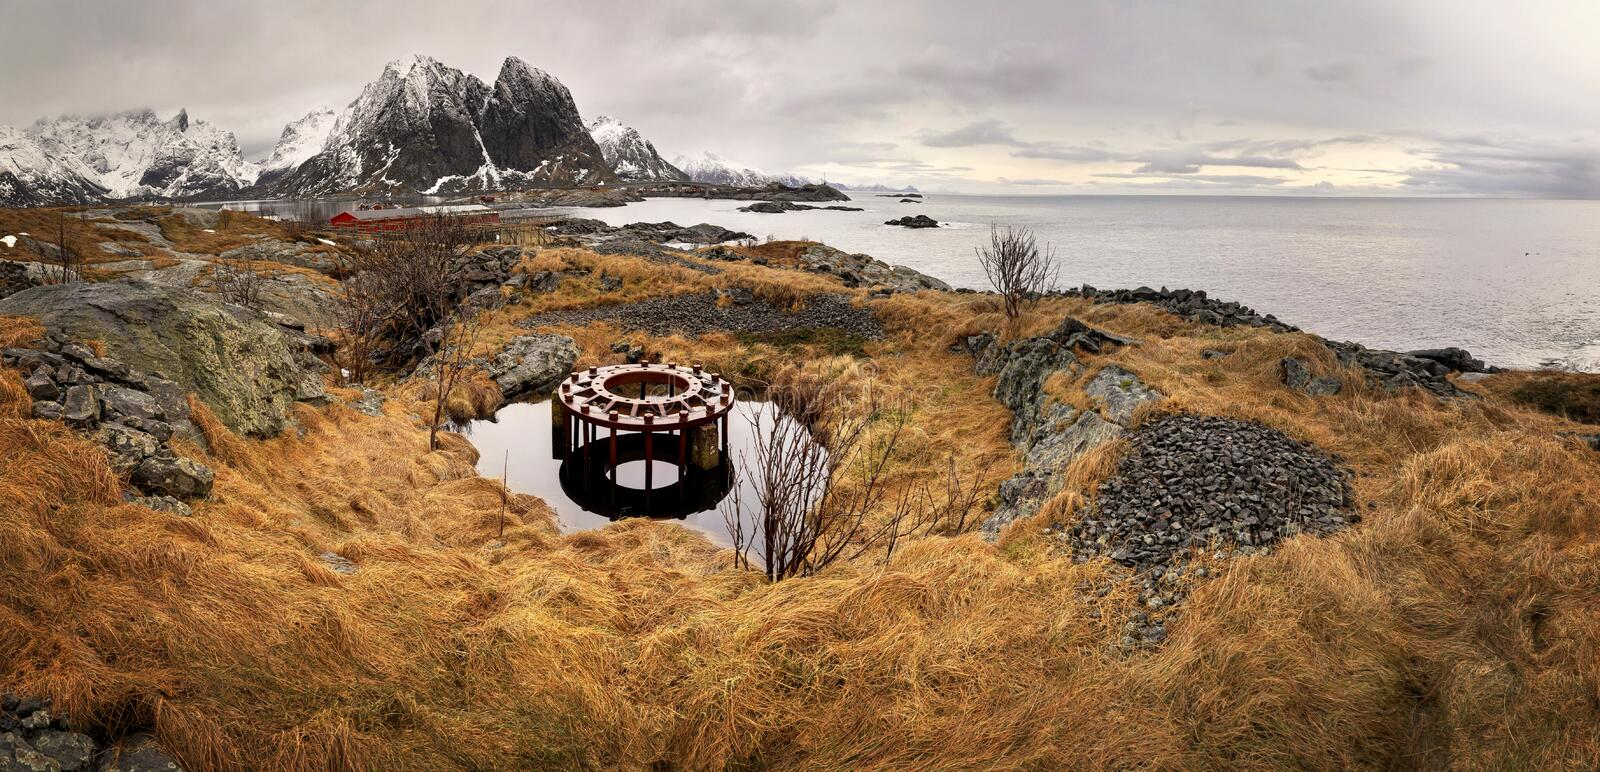 Abandoned german fortification with unfinished circle base for artillery gun from  WWII near Reine / Moskenes in Lofoten, Norway. One of the abandoned german stock image